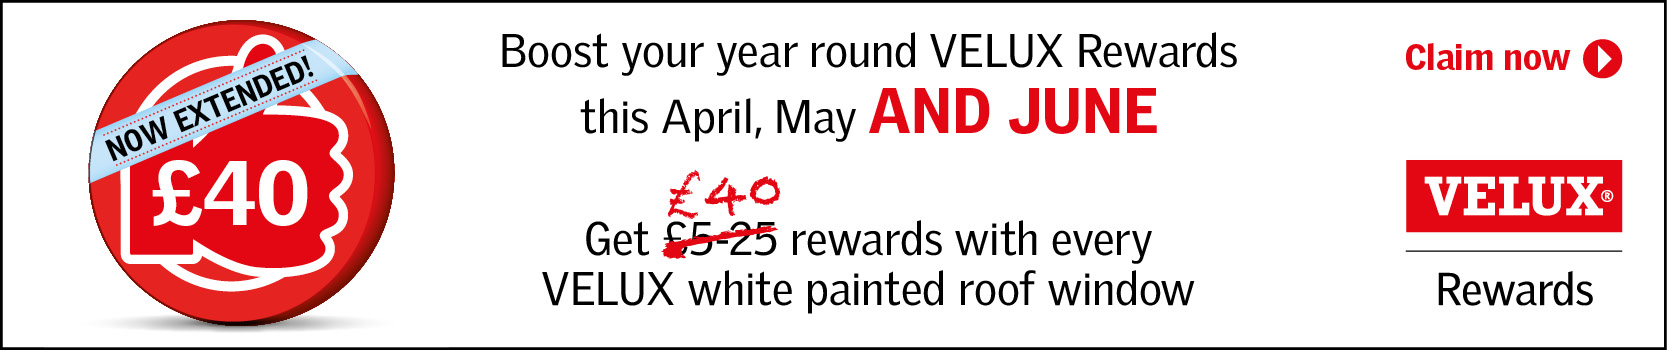 VELUX Rewards Banner